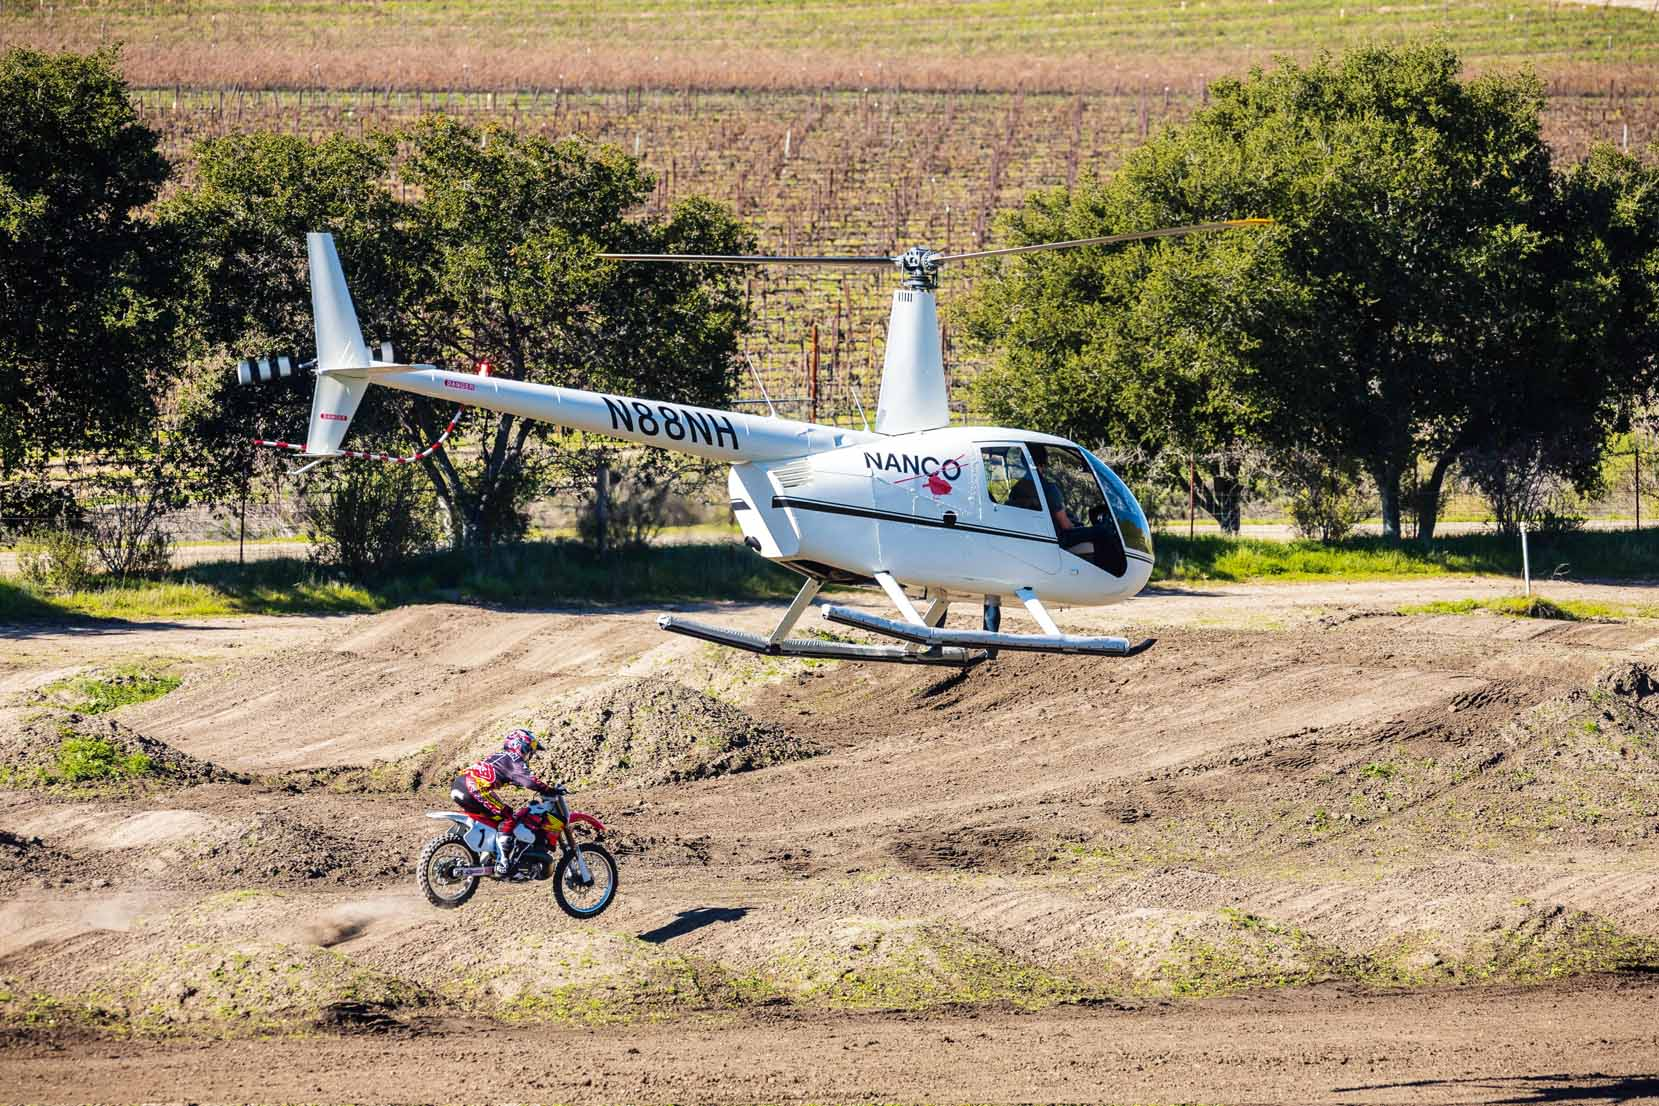 Ken Roczen rides Jeremy McGrath's 1996 Honda CR250R during a video shoot recreating segments from the original Terra Firma 2 motocross video at Castillo Ranch in Los Alamos, California, USA on 28 December 2016. // Garth Milan/Red Bull Content Pool // P-20170109-01474 // Usage for editorial use only // Please go to www.redbullcontentpool.com for further information. //